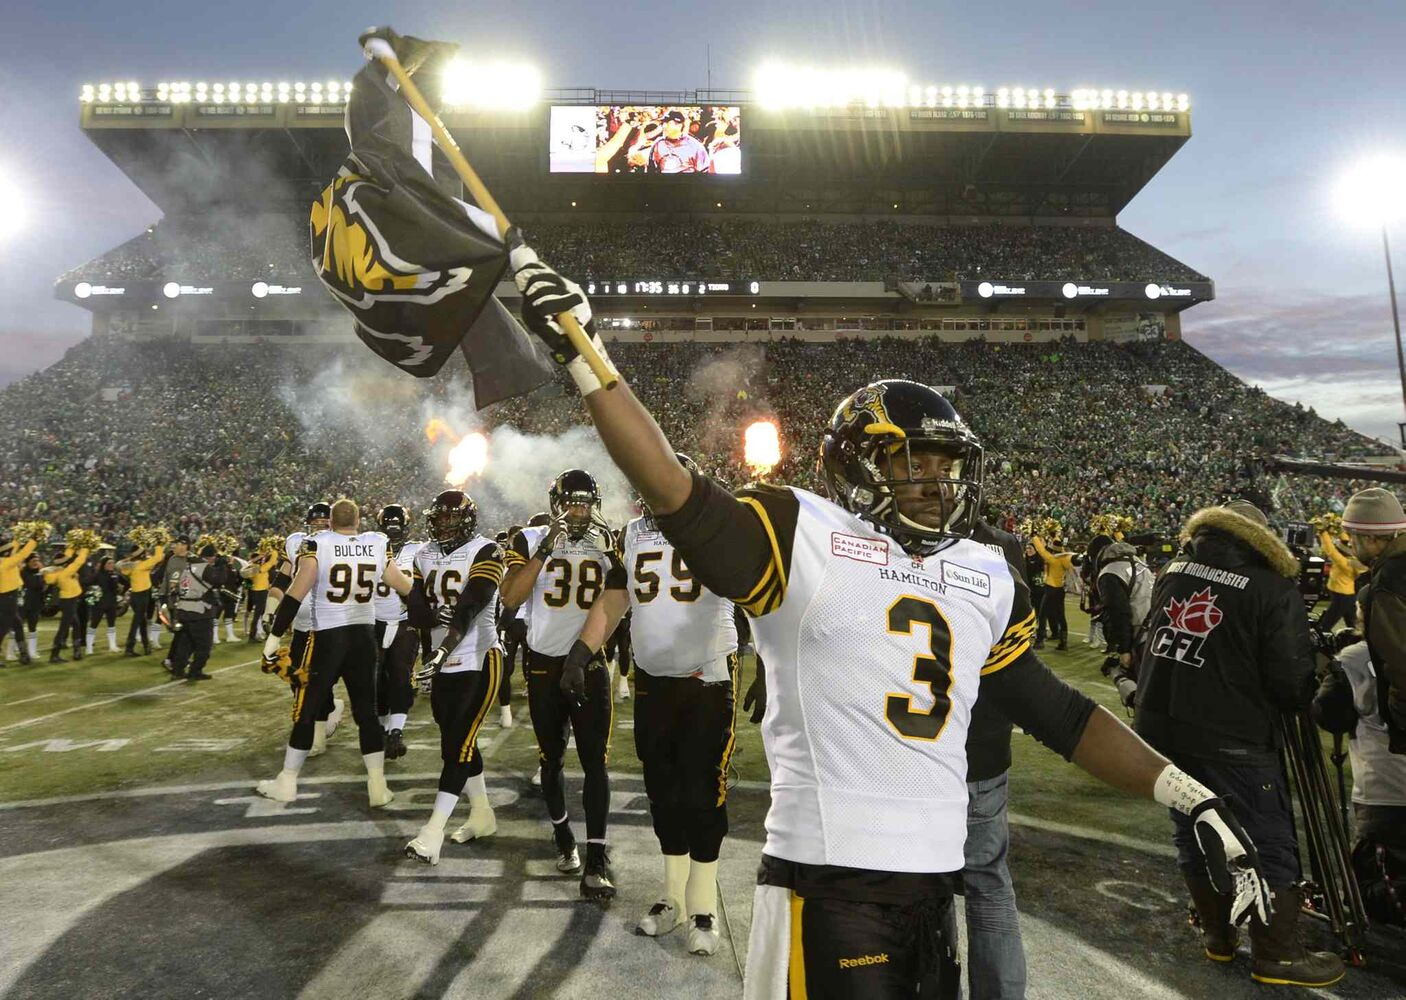 Hamilton Tiger-Cats linebacker Marc Beswick (3) leads his team onto the field at the Grey Cup Sunday.